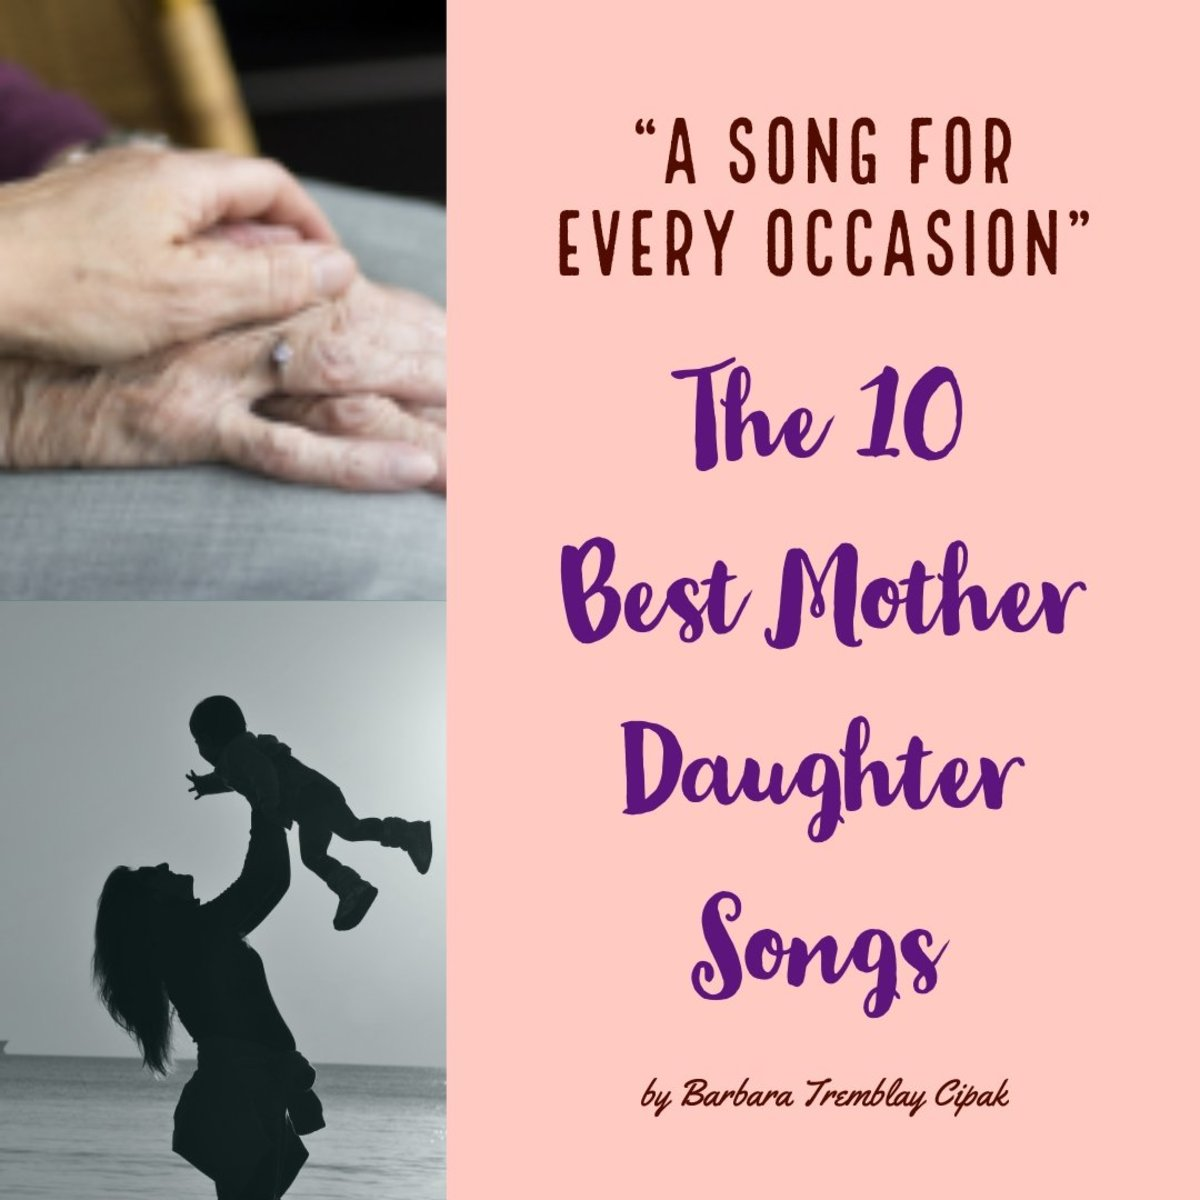 The Top 10 Best Mother Daughter Songs, Songs for Every Occasion